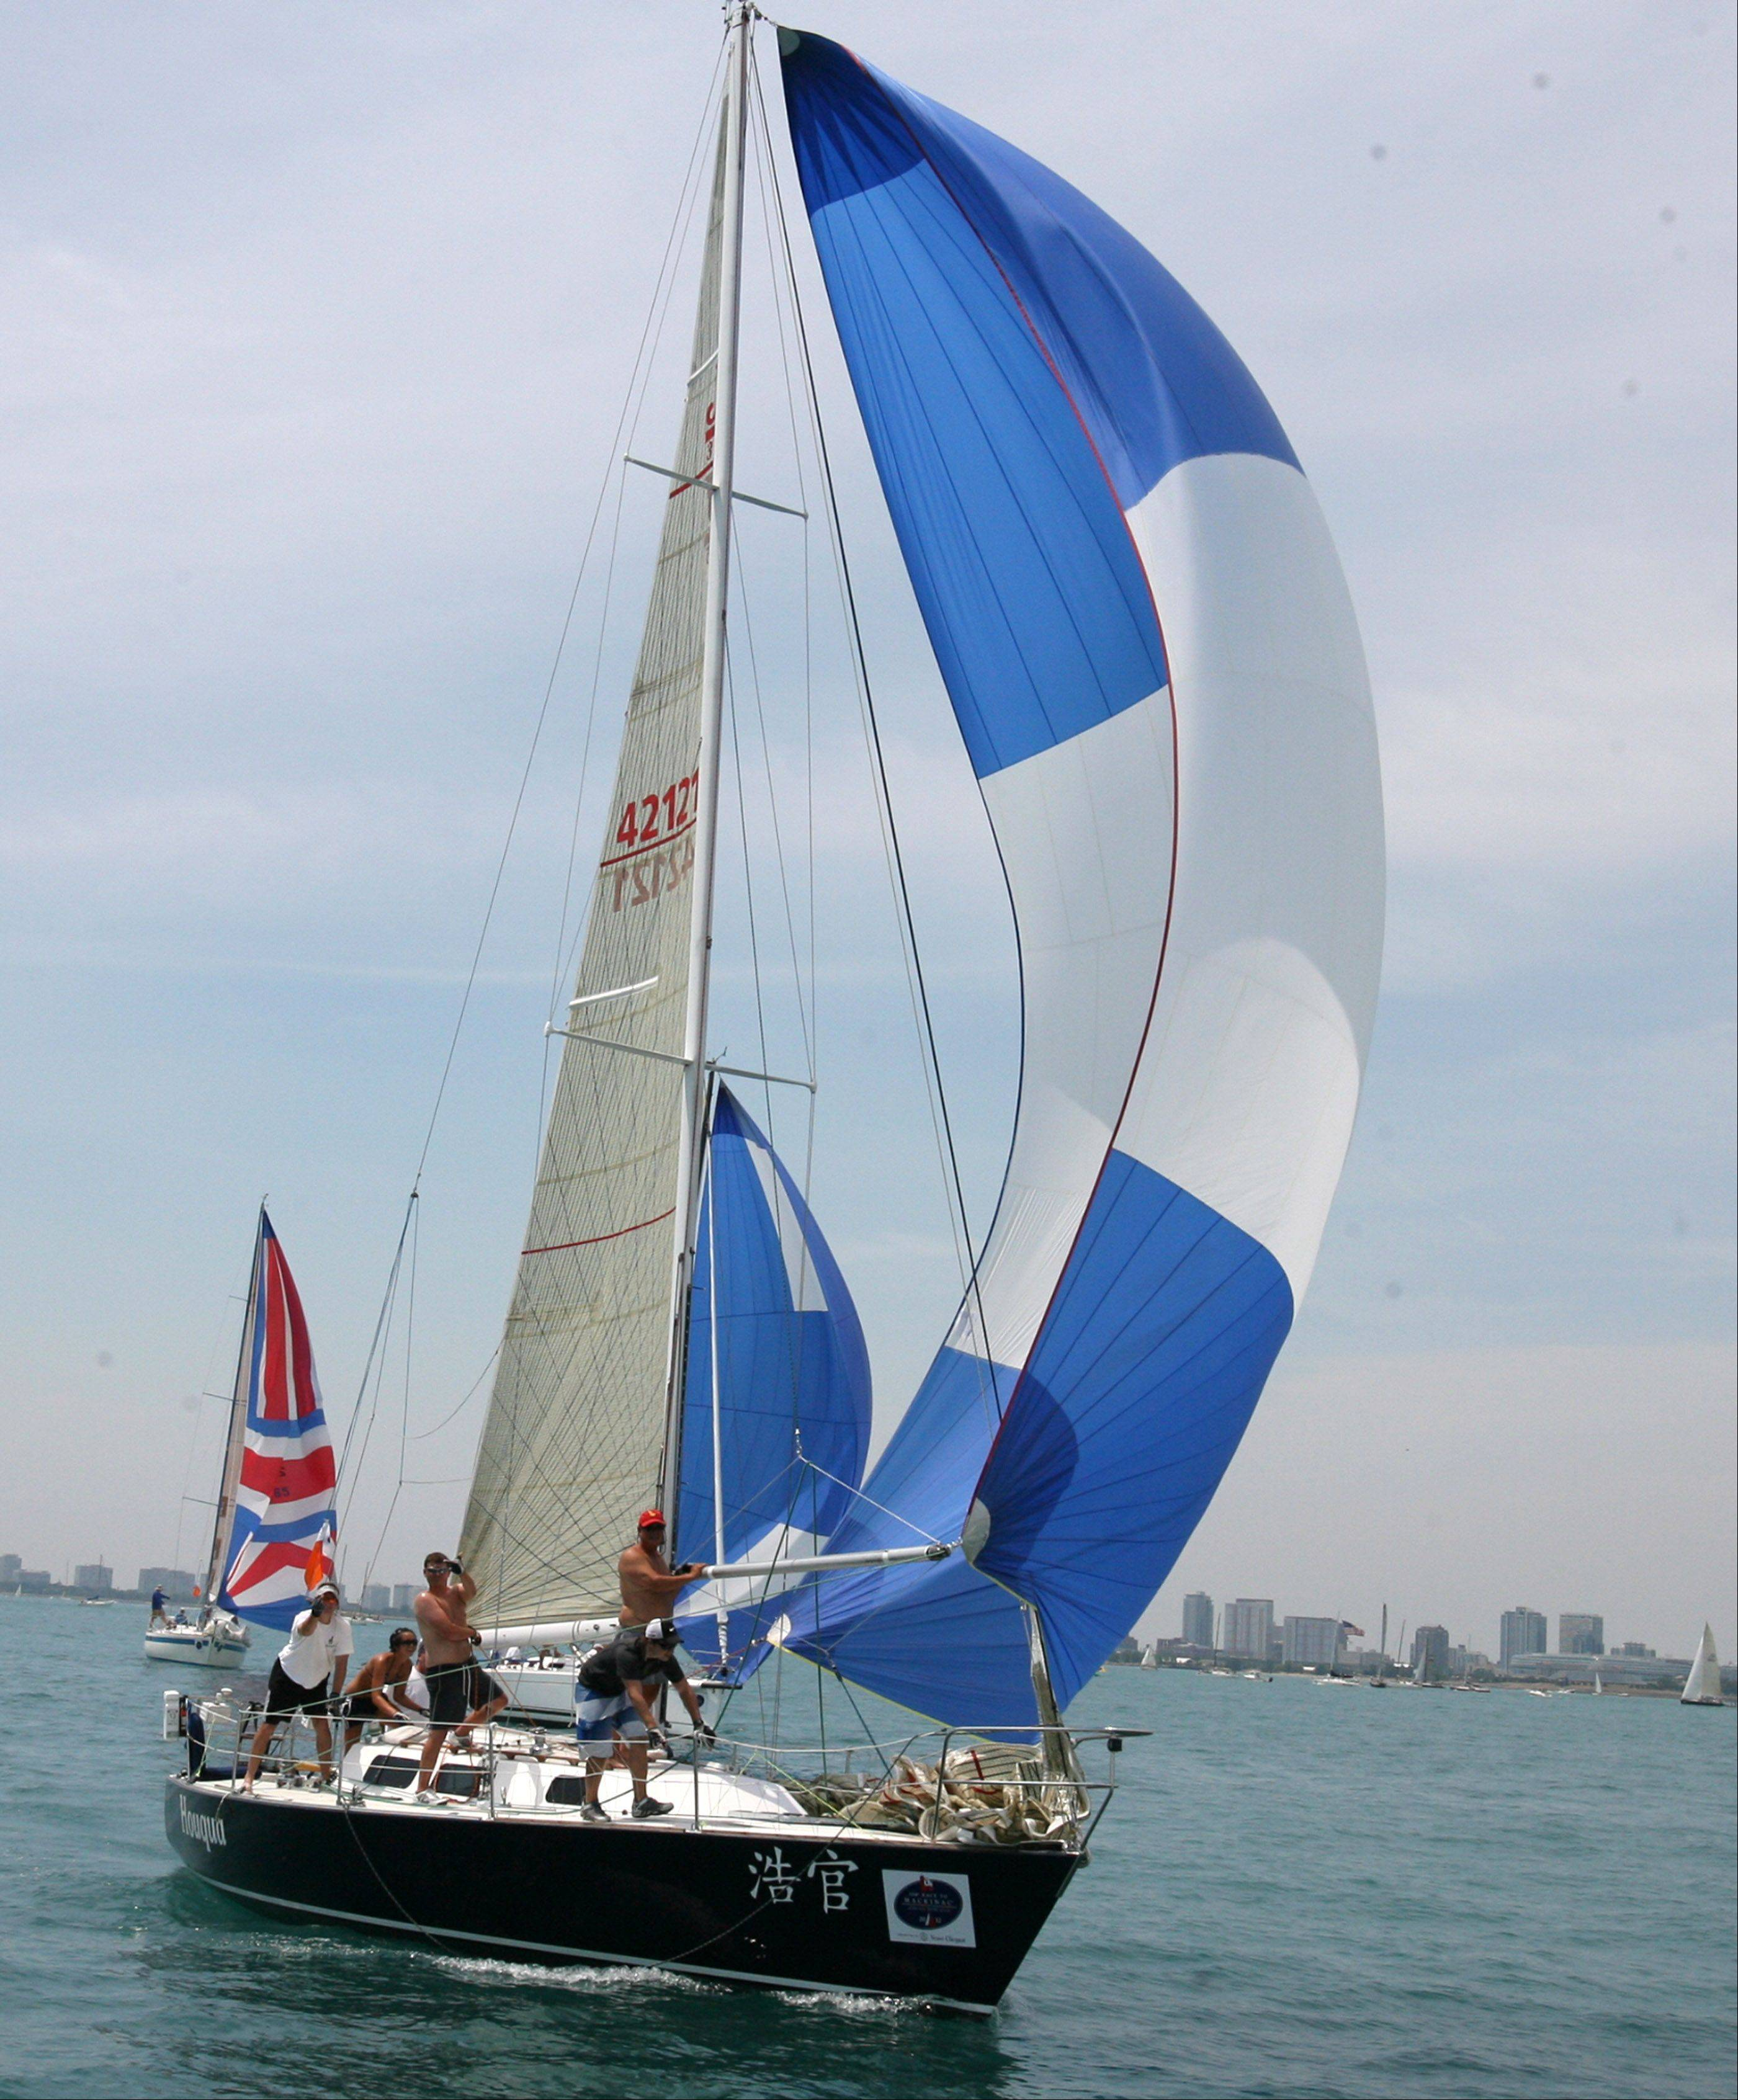 The crew of Houqua, USA 4212, owned by Jack Andree, of Muskegon, MI, with Muskegon Yacht Club is able to get a little wind in the boats sail.